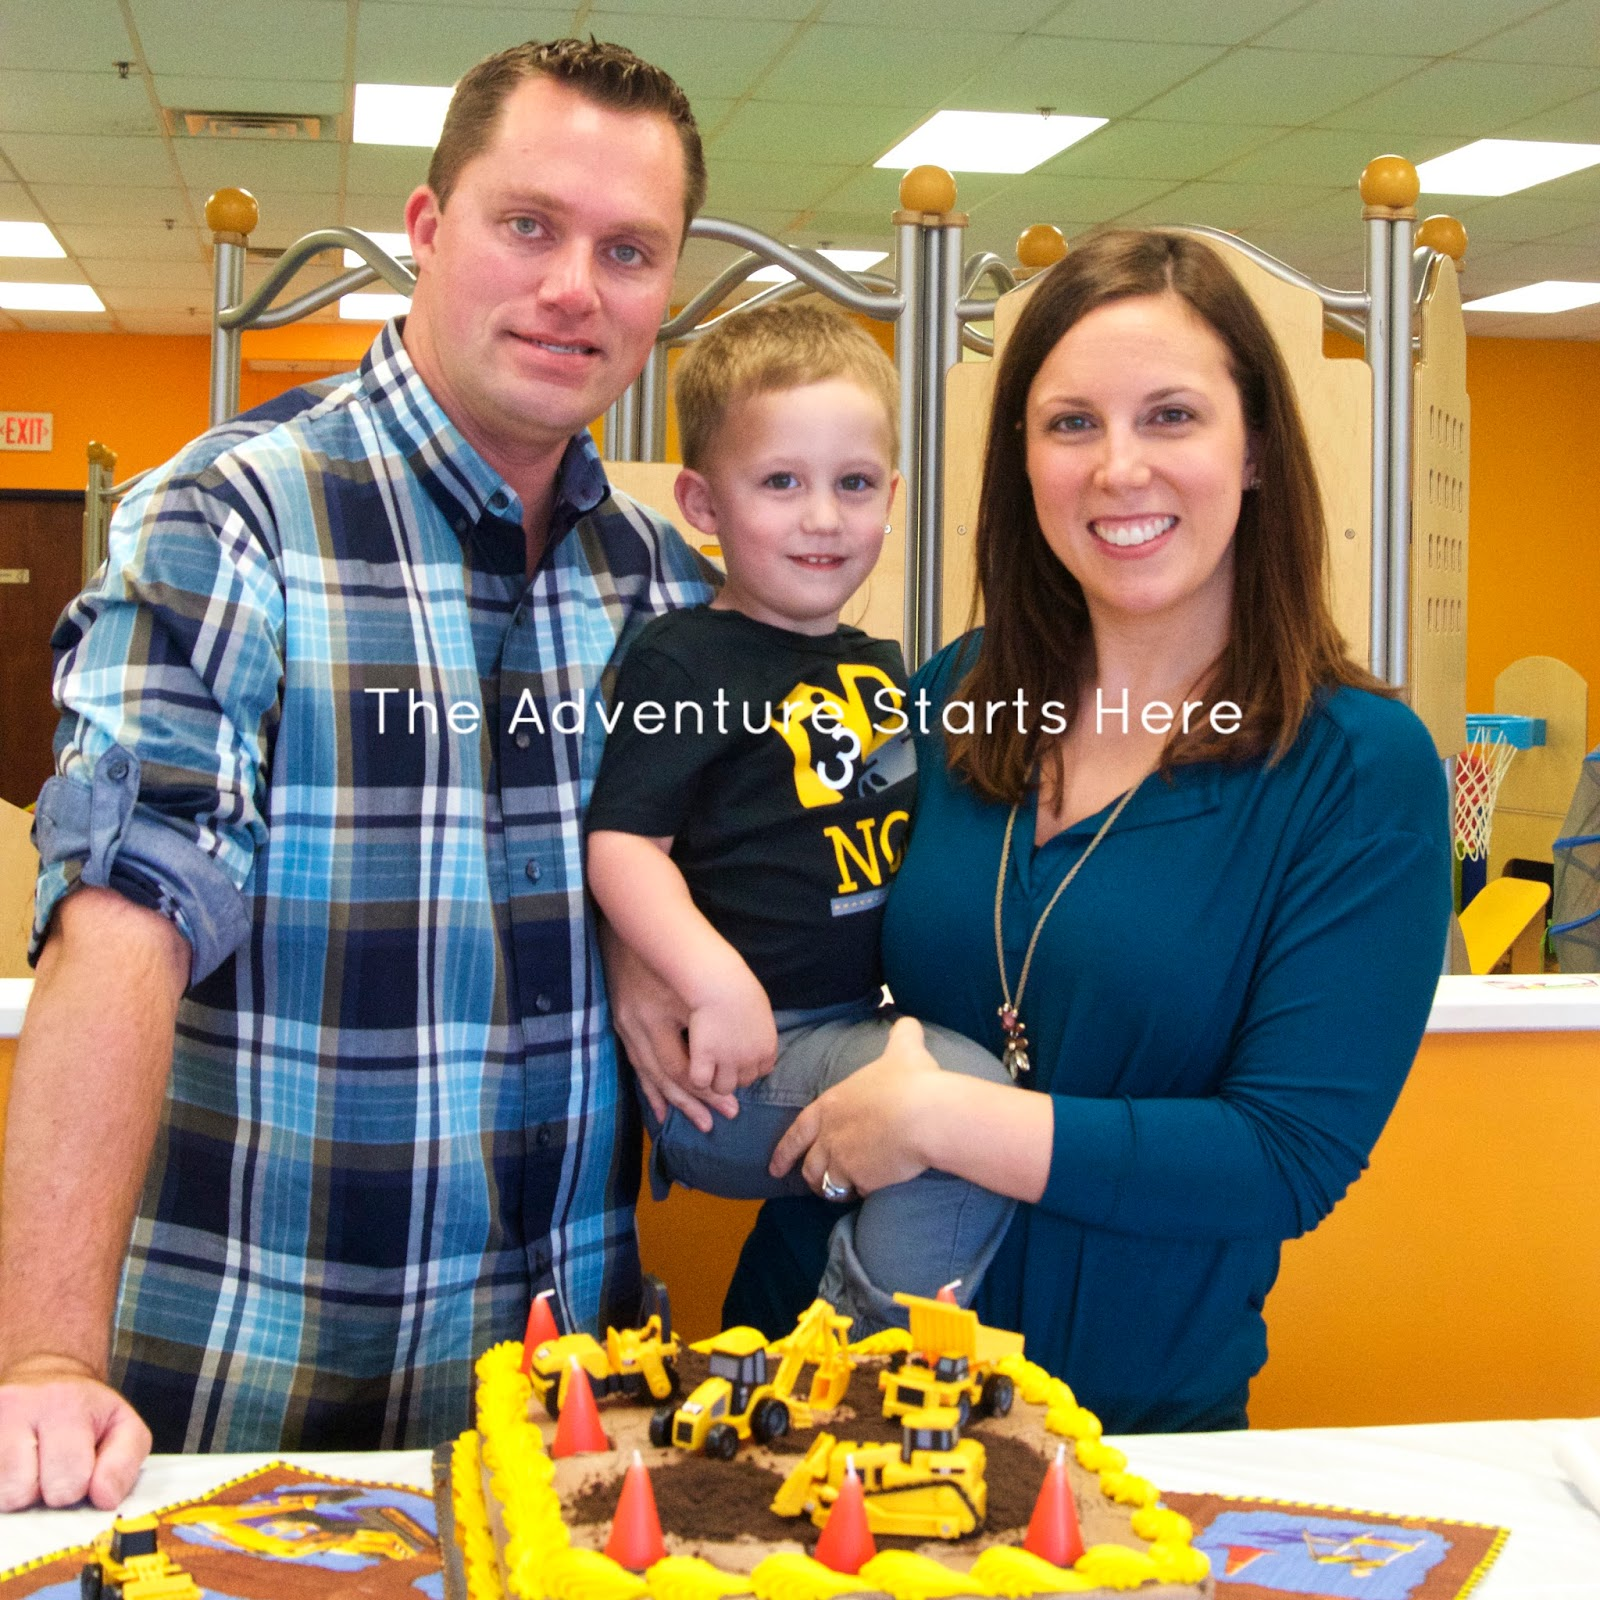 The Adventure Starts Here: Noah's 3rd Birthday Party